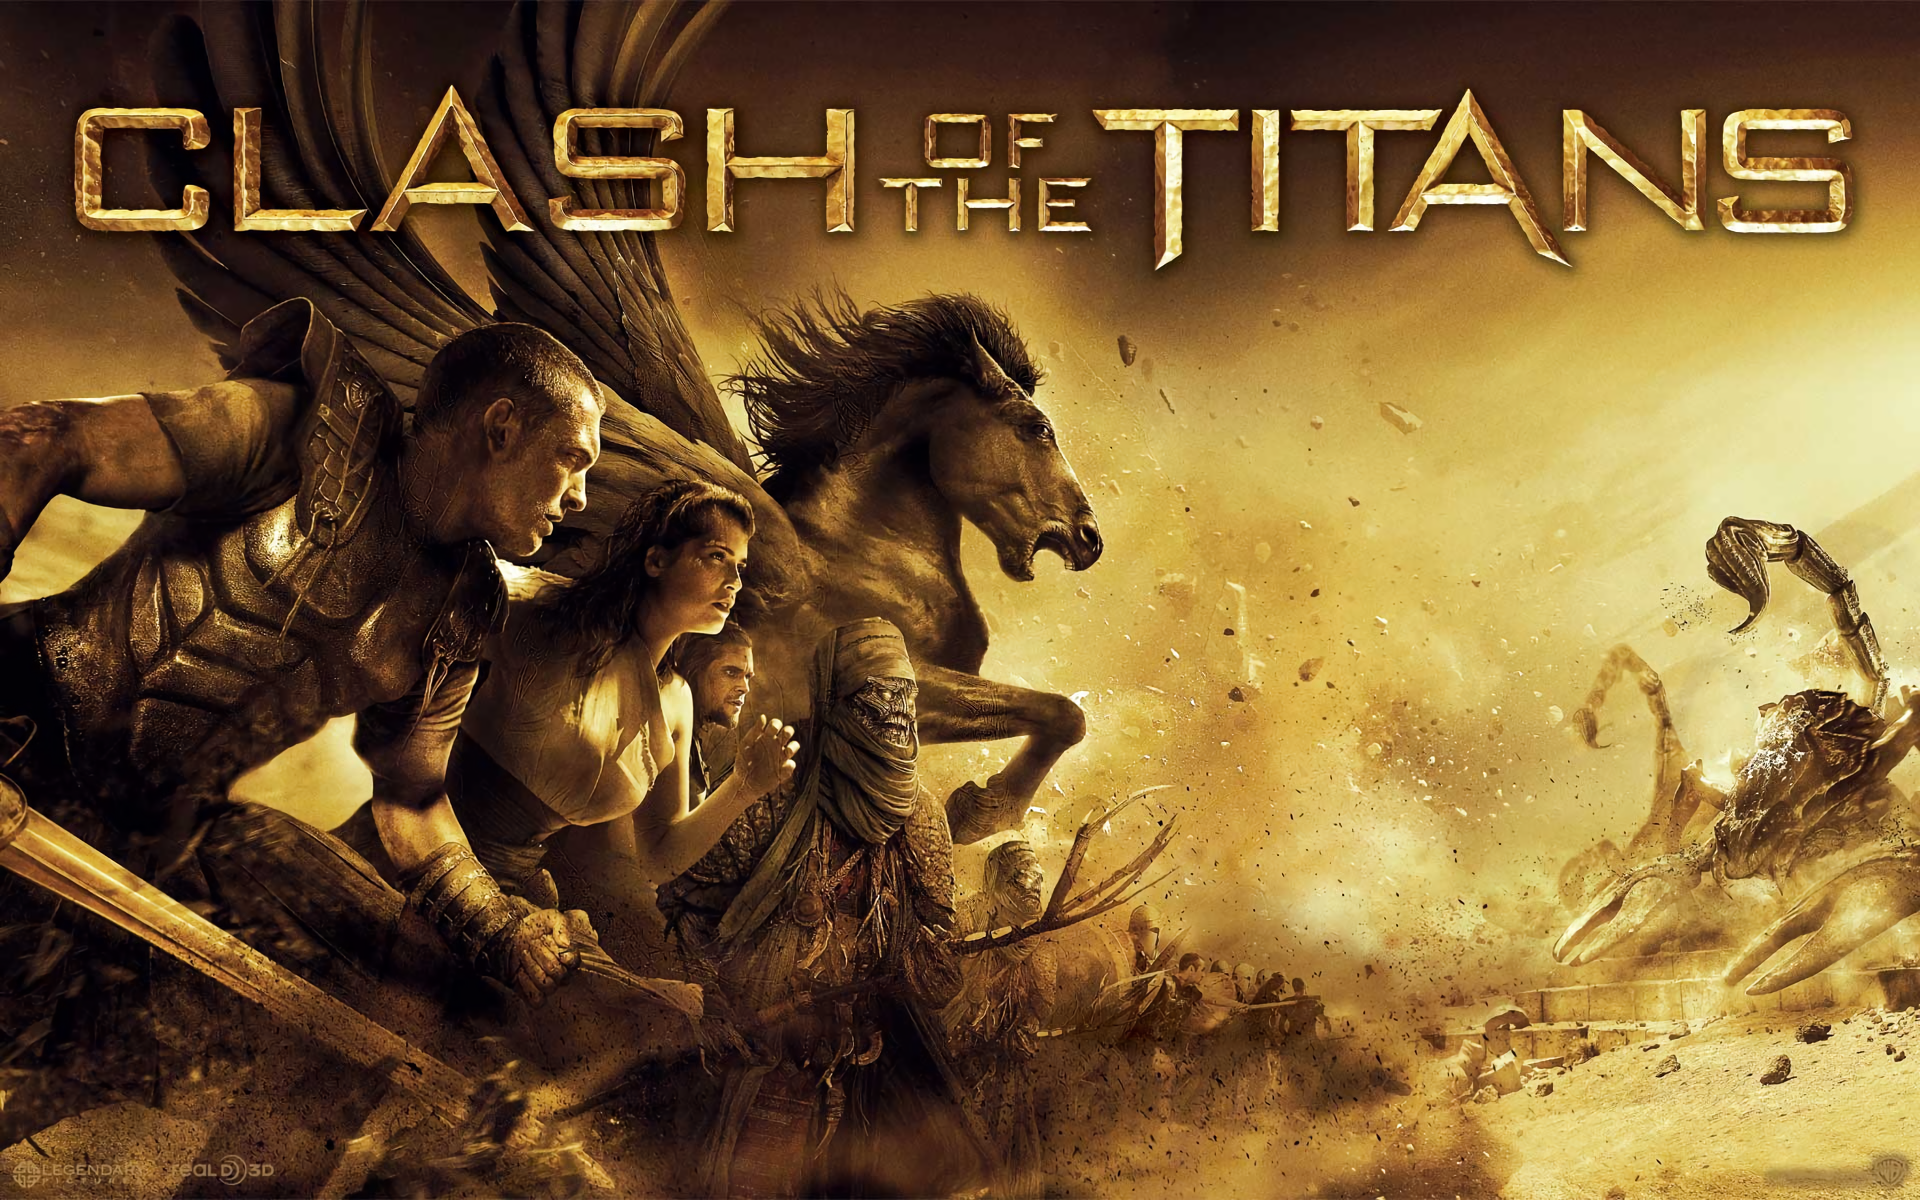 1920x1200 - Clash Of The Titans (2010) Wallpapers 4